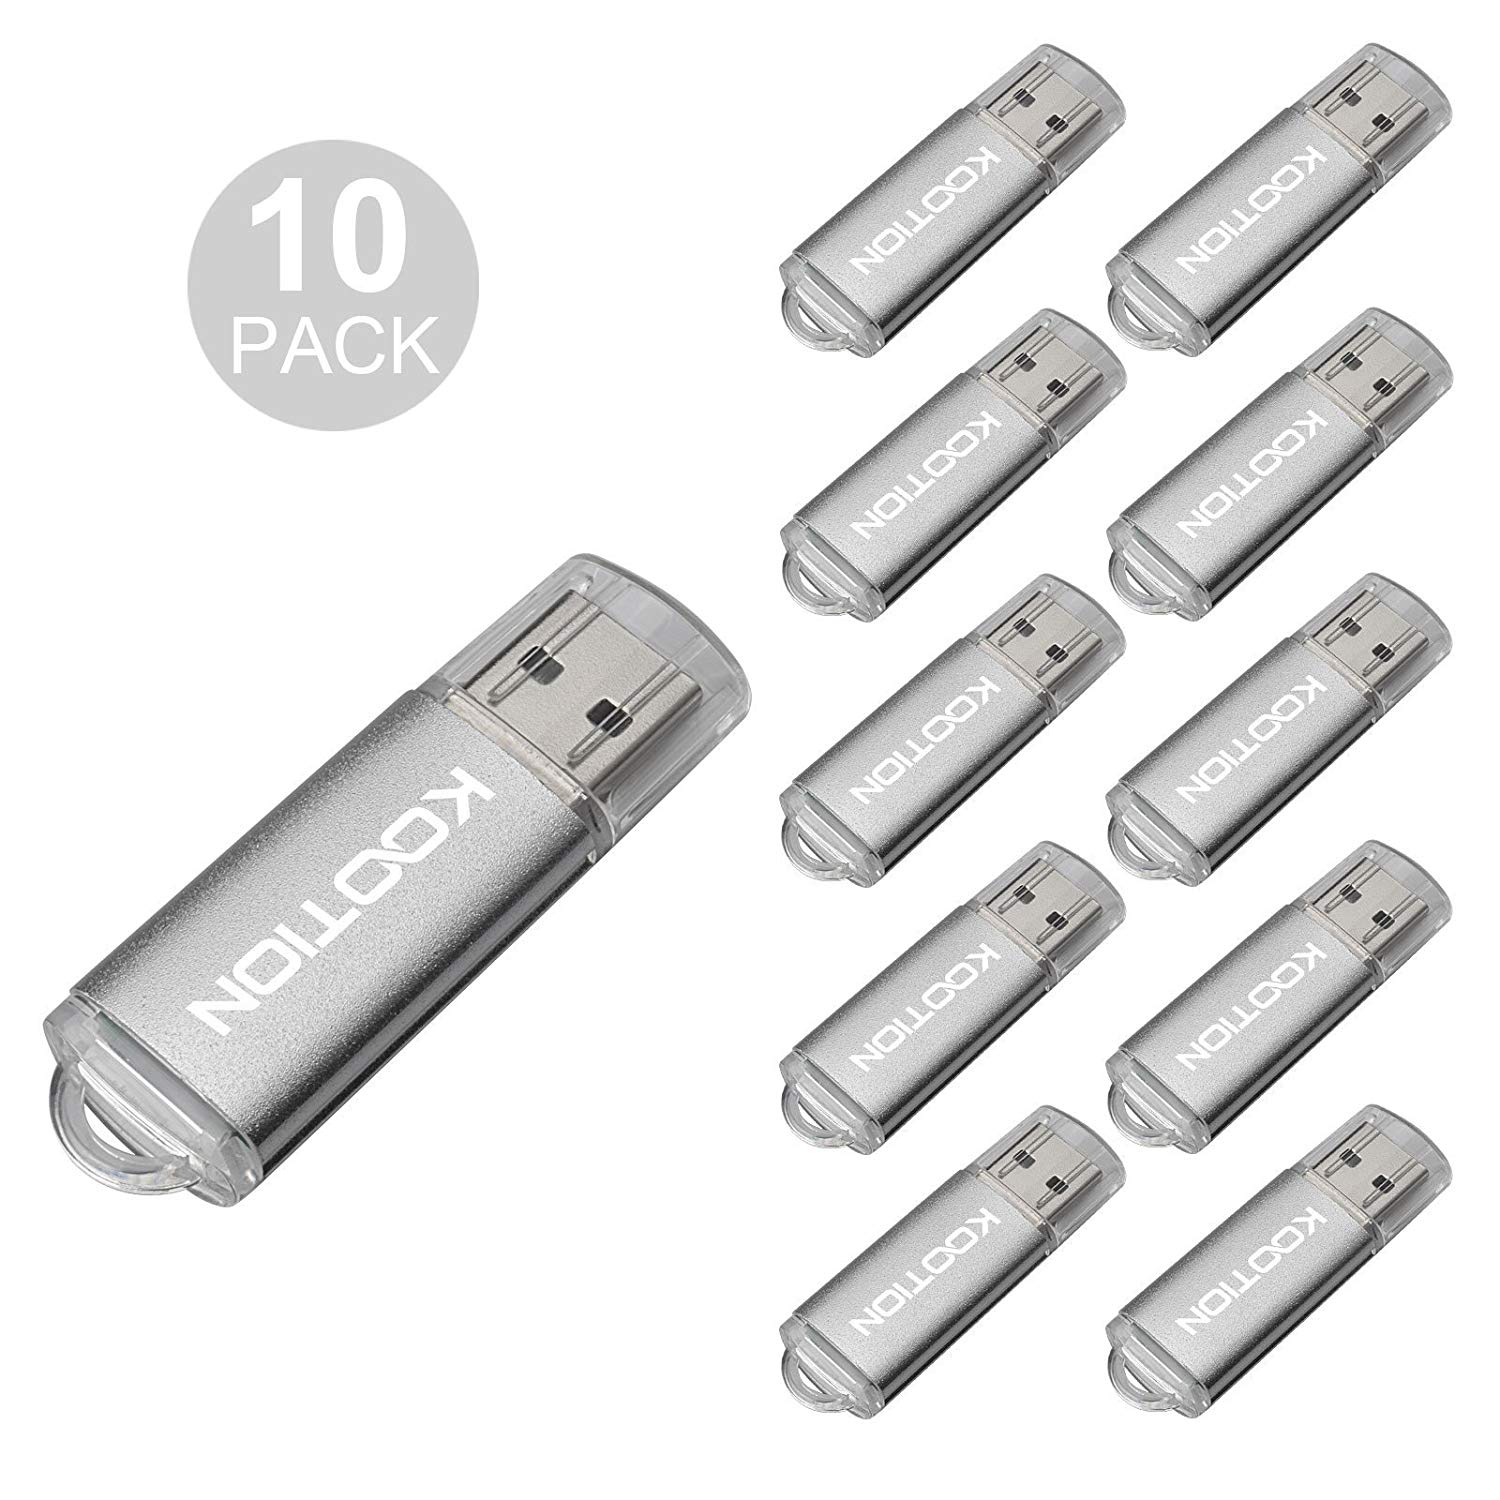 KOOTION 10Pcs 4GB USB Flash Drive Memory Stick Fold Storage Thumb Pen Drive Swivel in Silver